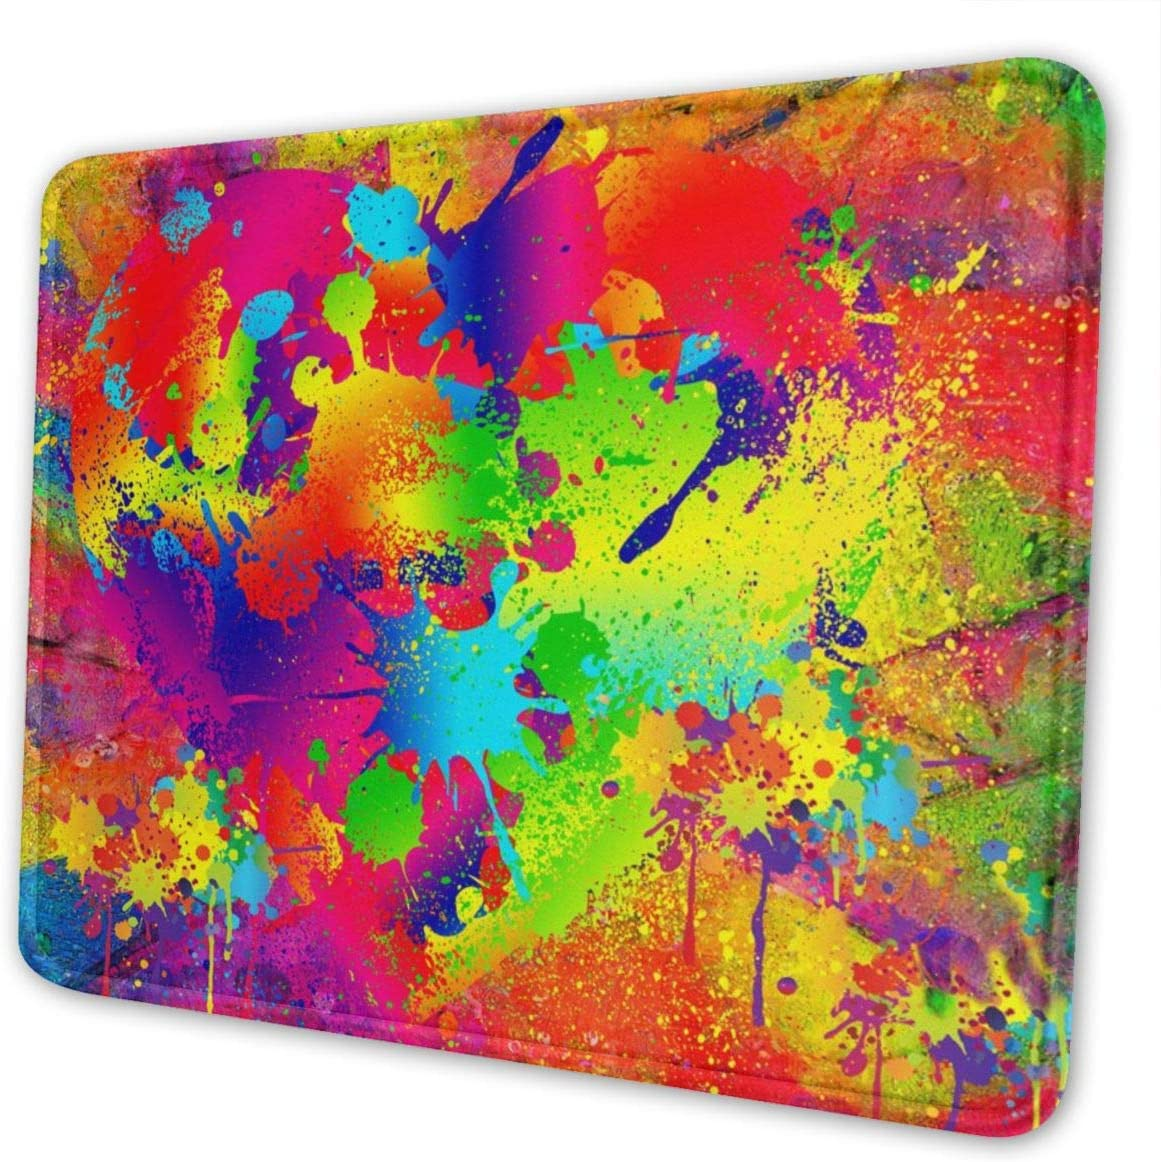 Mouse Pad with Stitched Edge Gaming Mouse Mat Non-Slip Rubber Base Mousepad for Laptop Computer Pc 10×12 Inches Splattered Paint